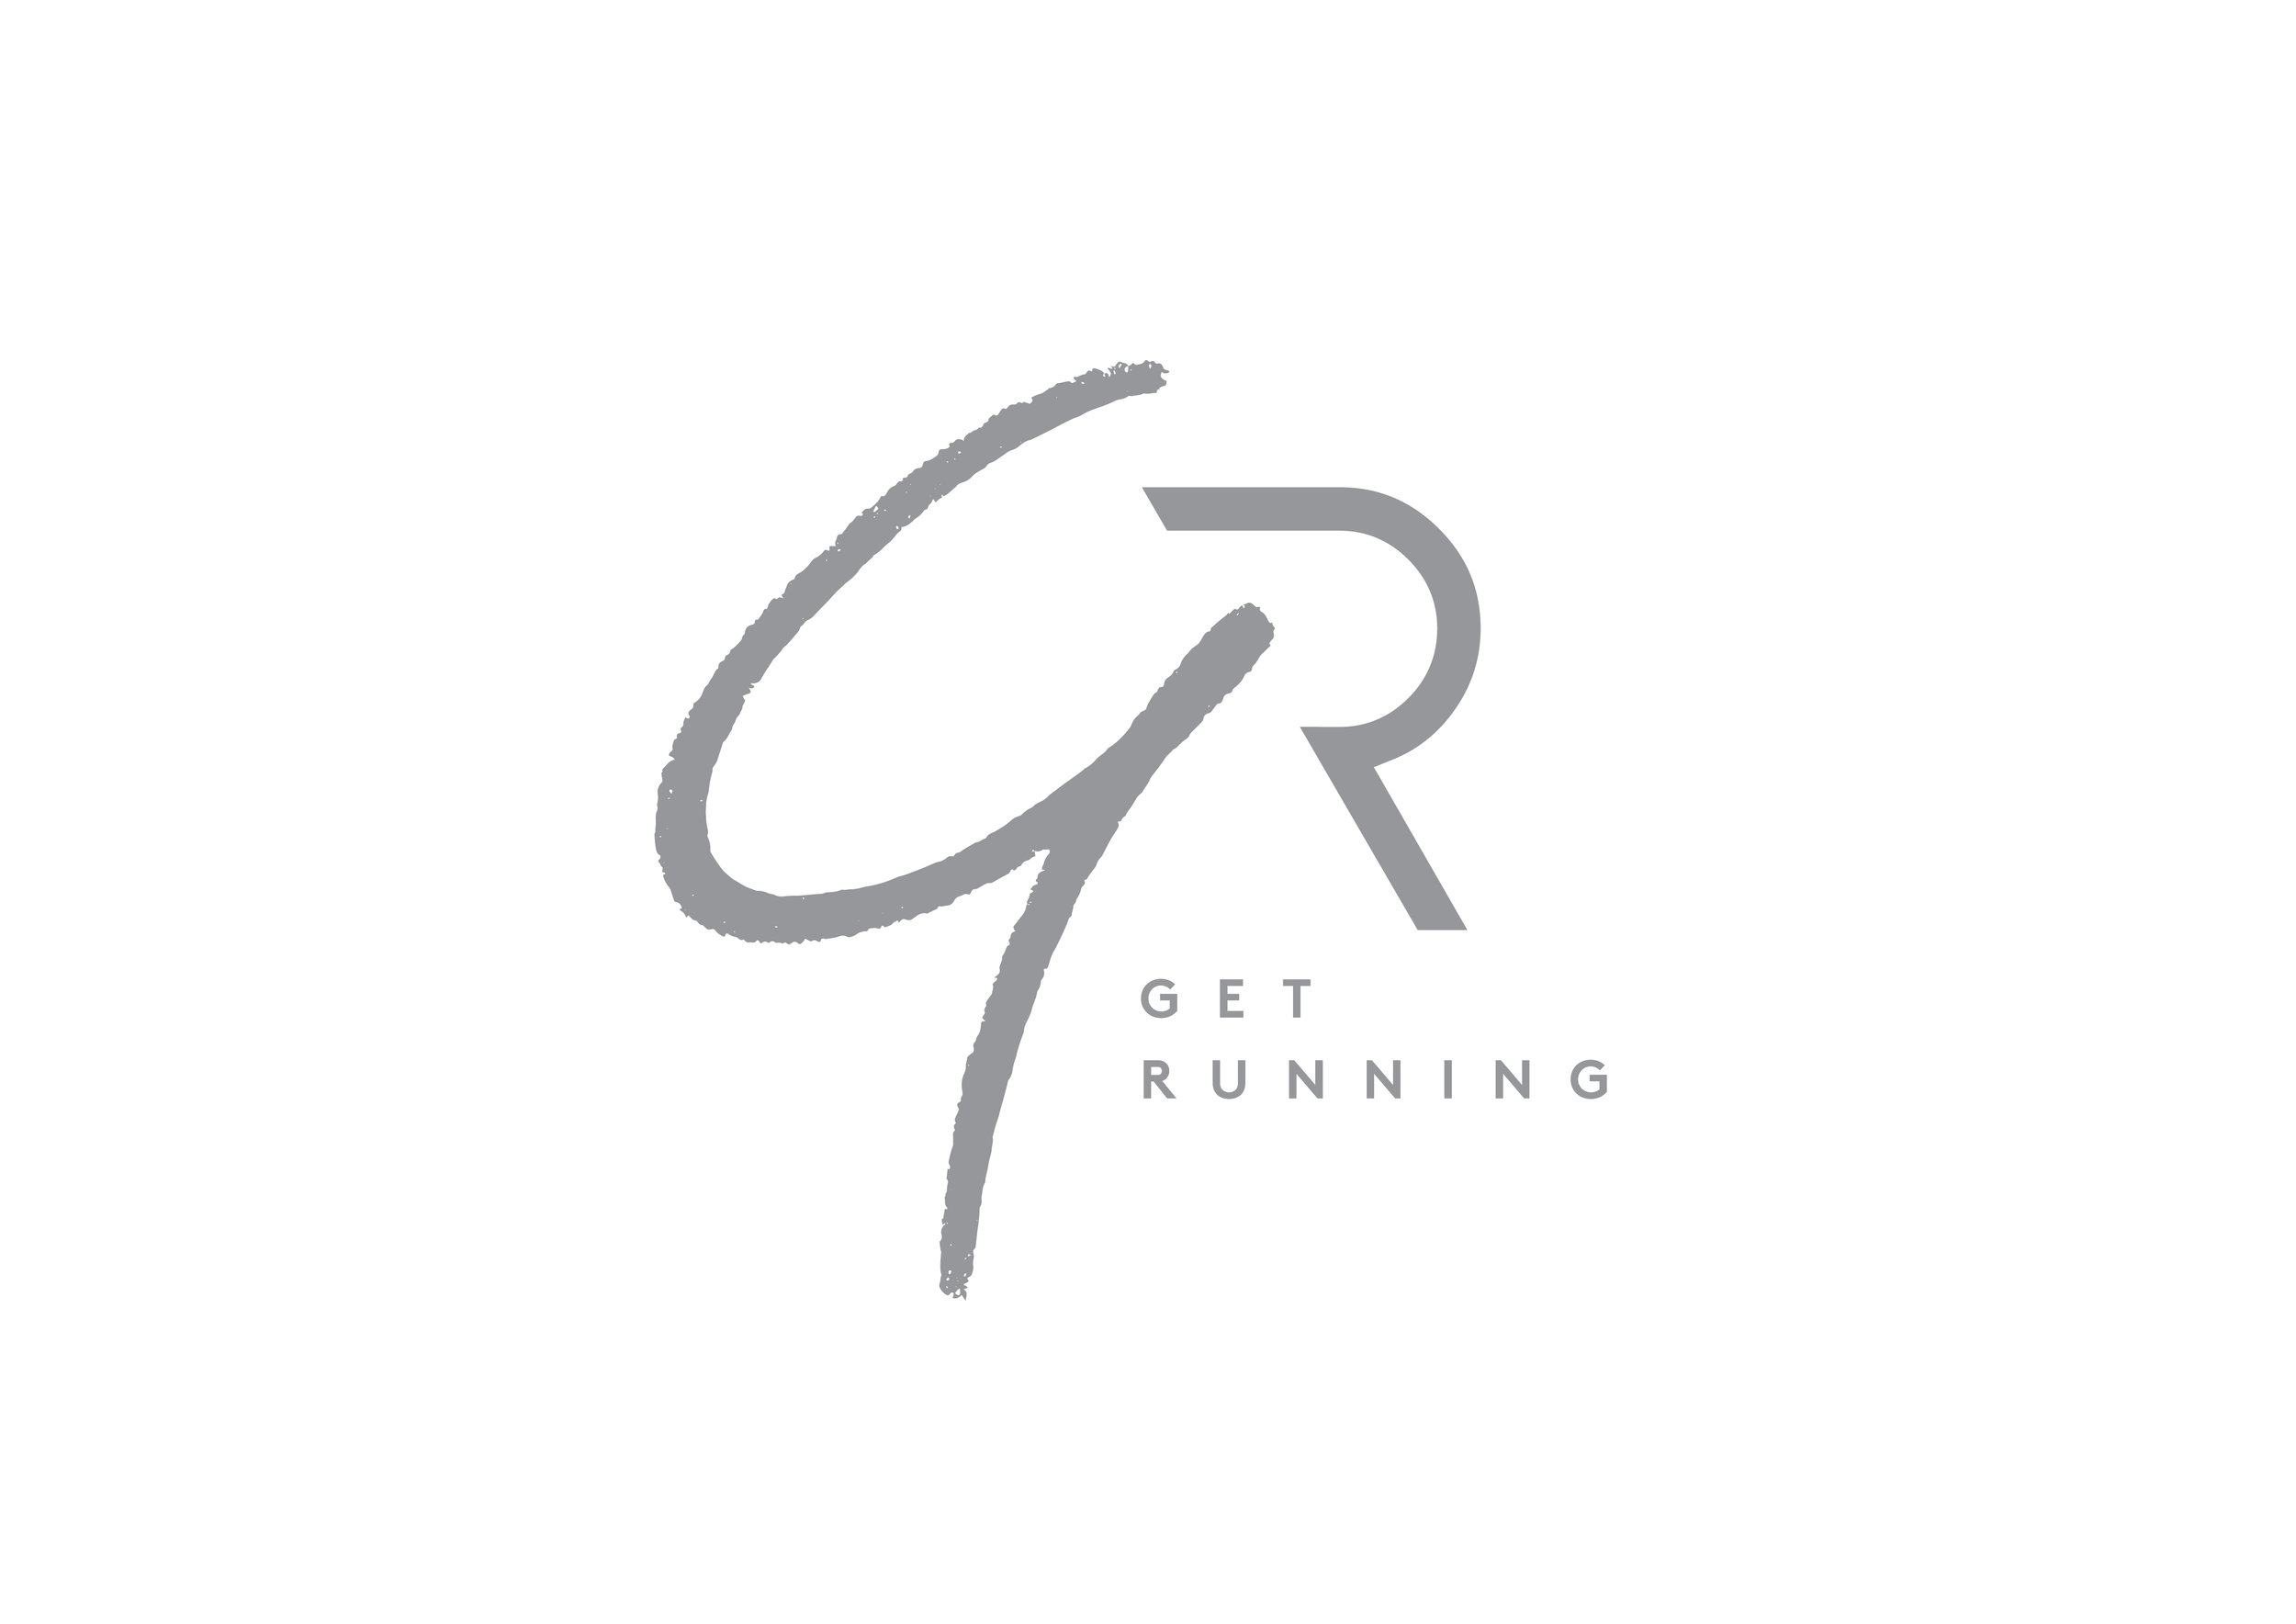 GR_Logo_GREY on white.jpg